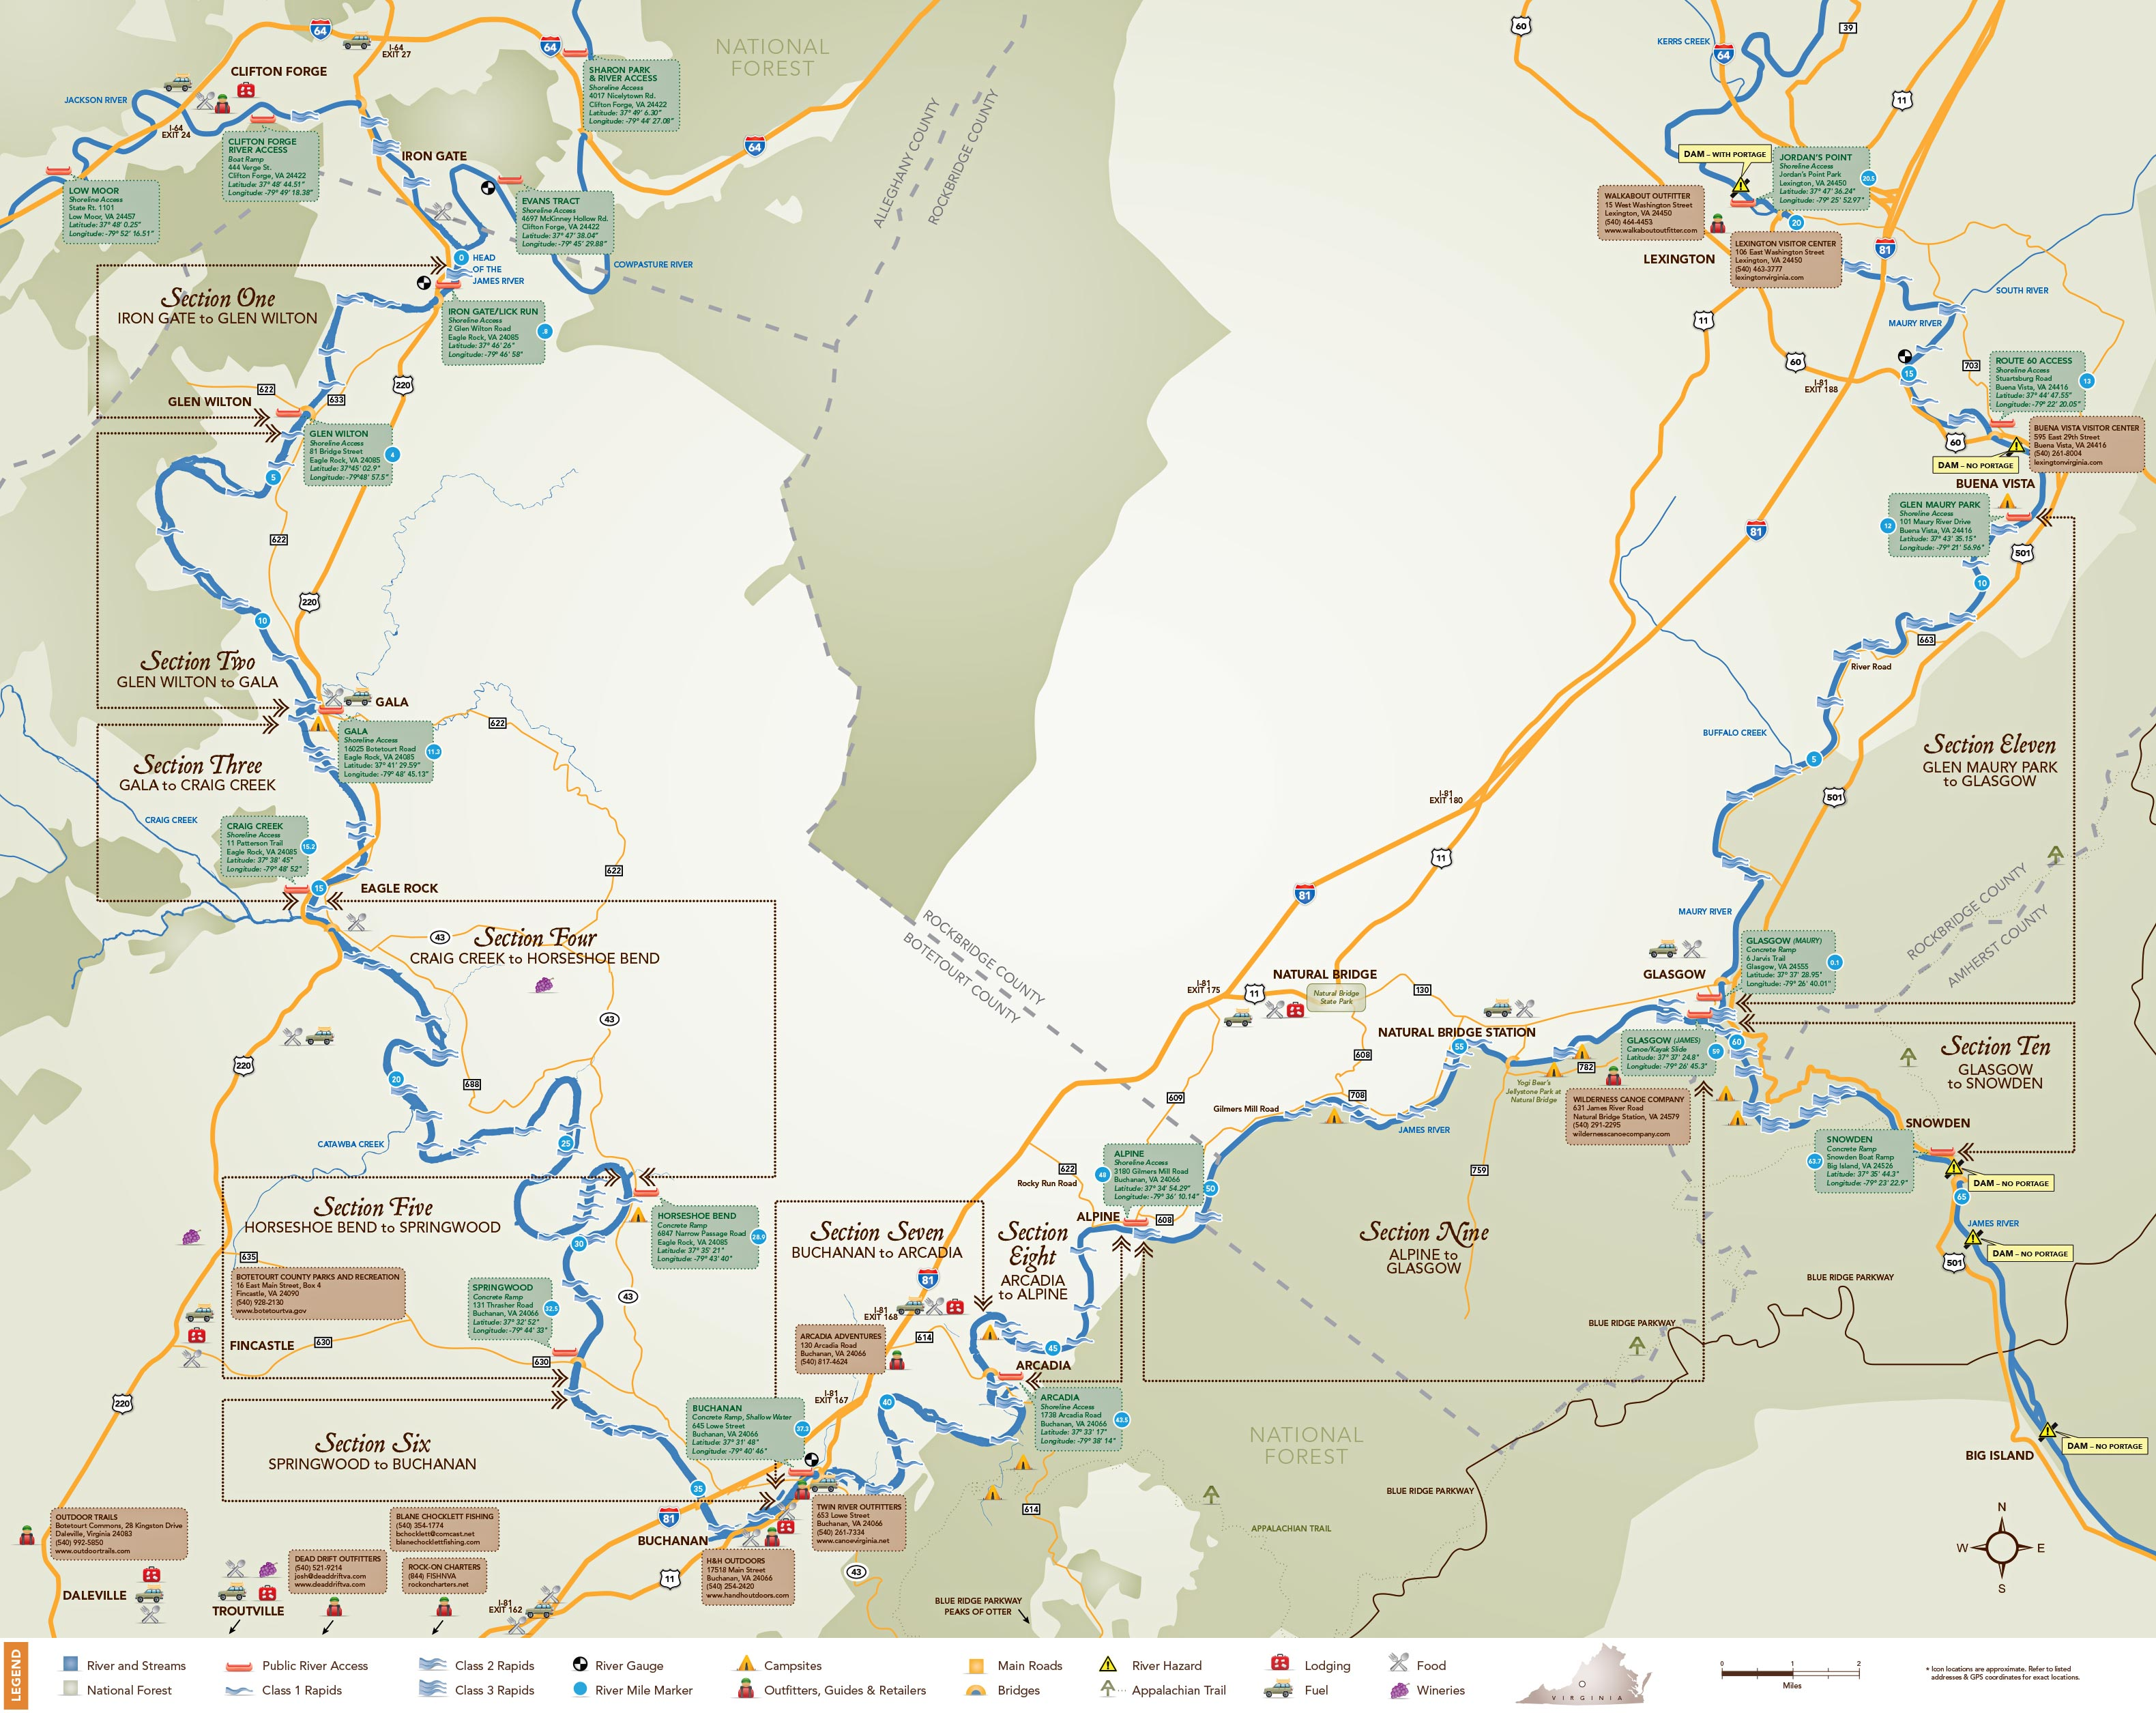 Maps - Upper James River Water Trail